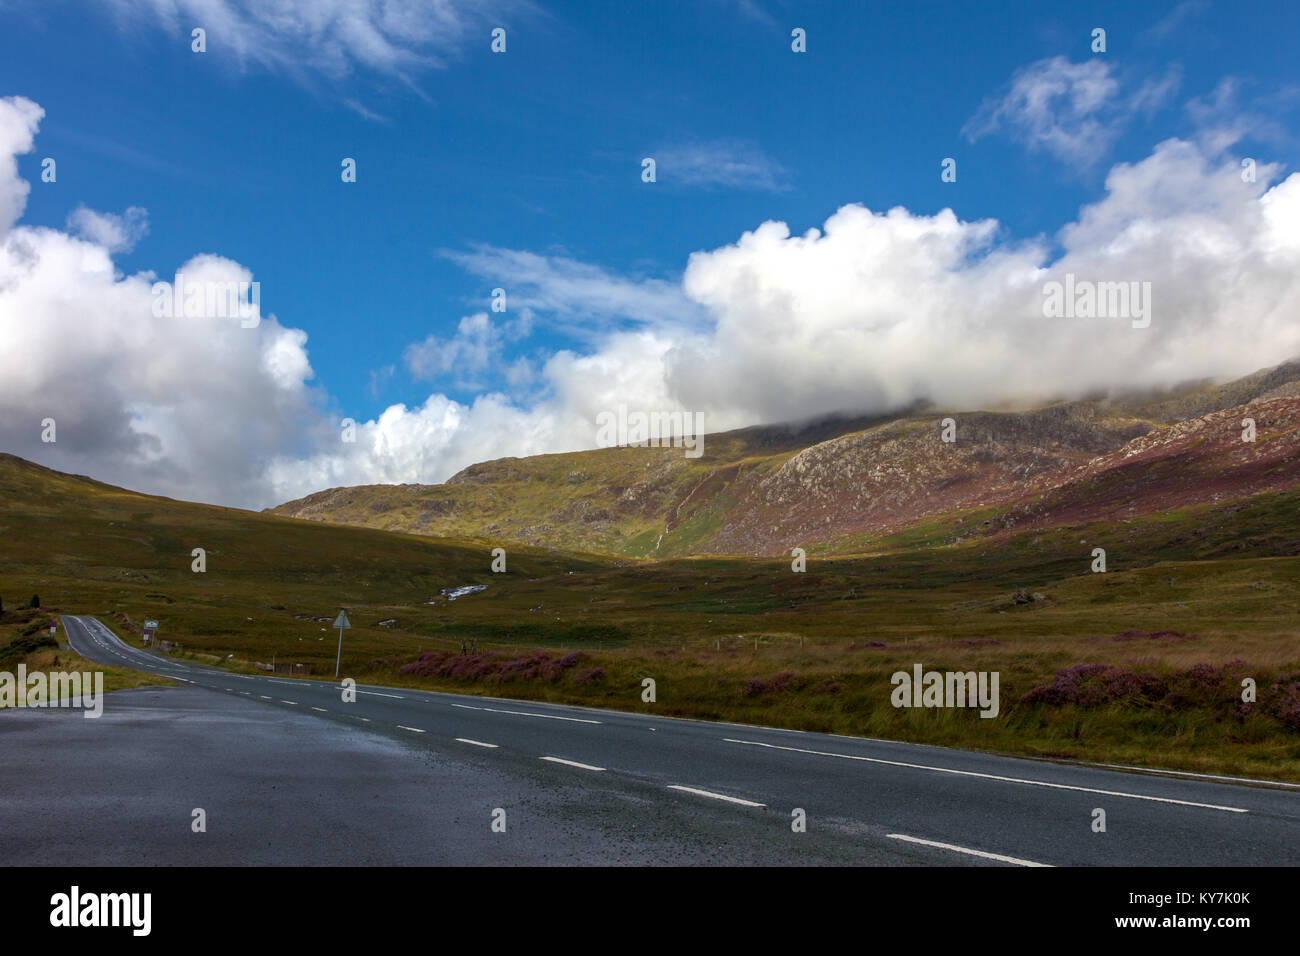 A bracketed landscape photograph taken in Snowdonia National Park looking East from a layby on the A4086 towards Stock Photo